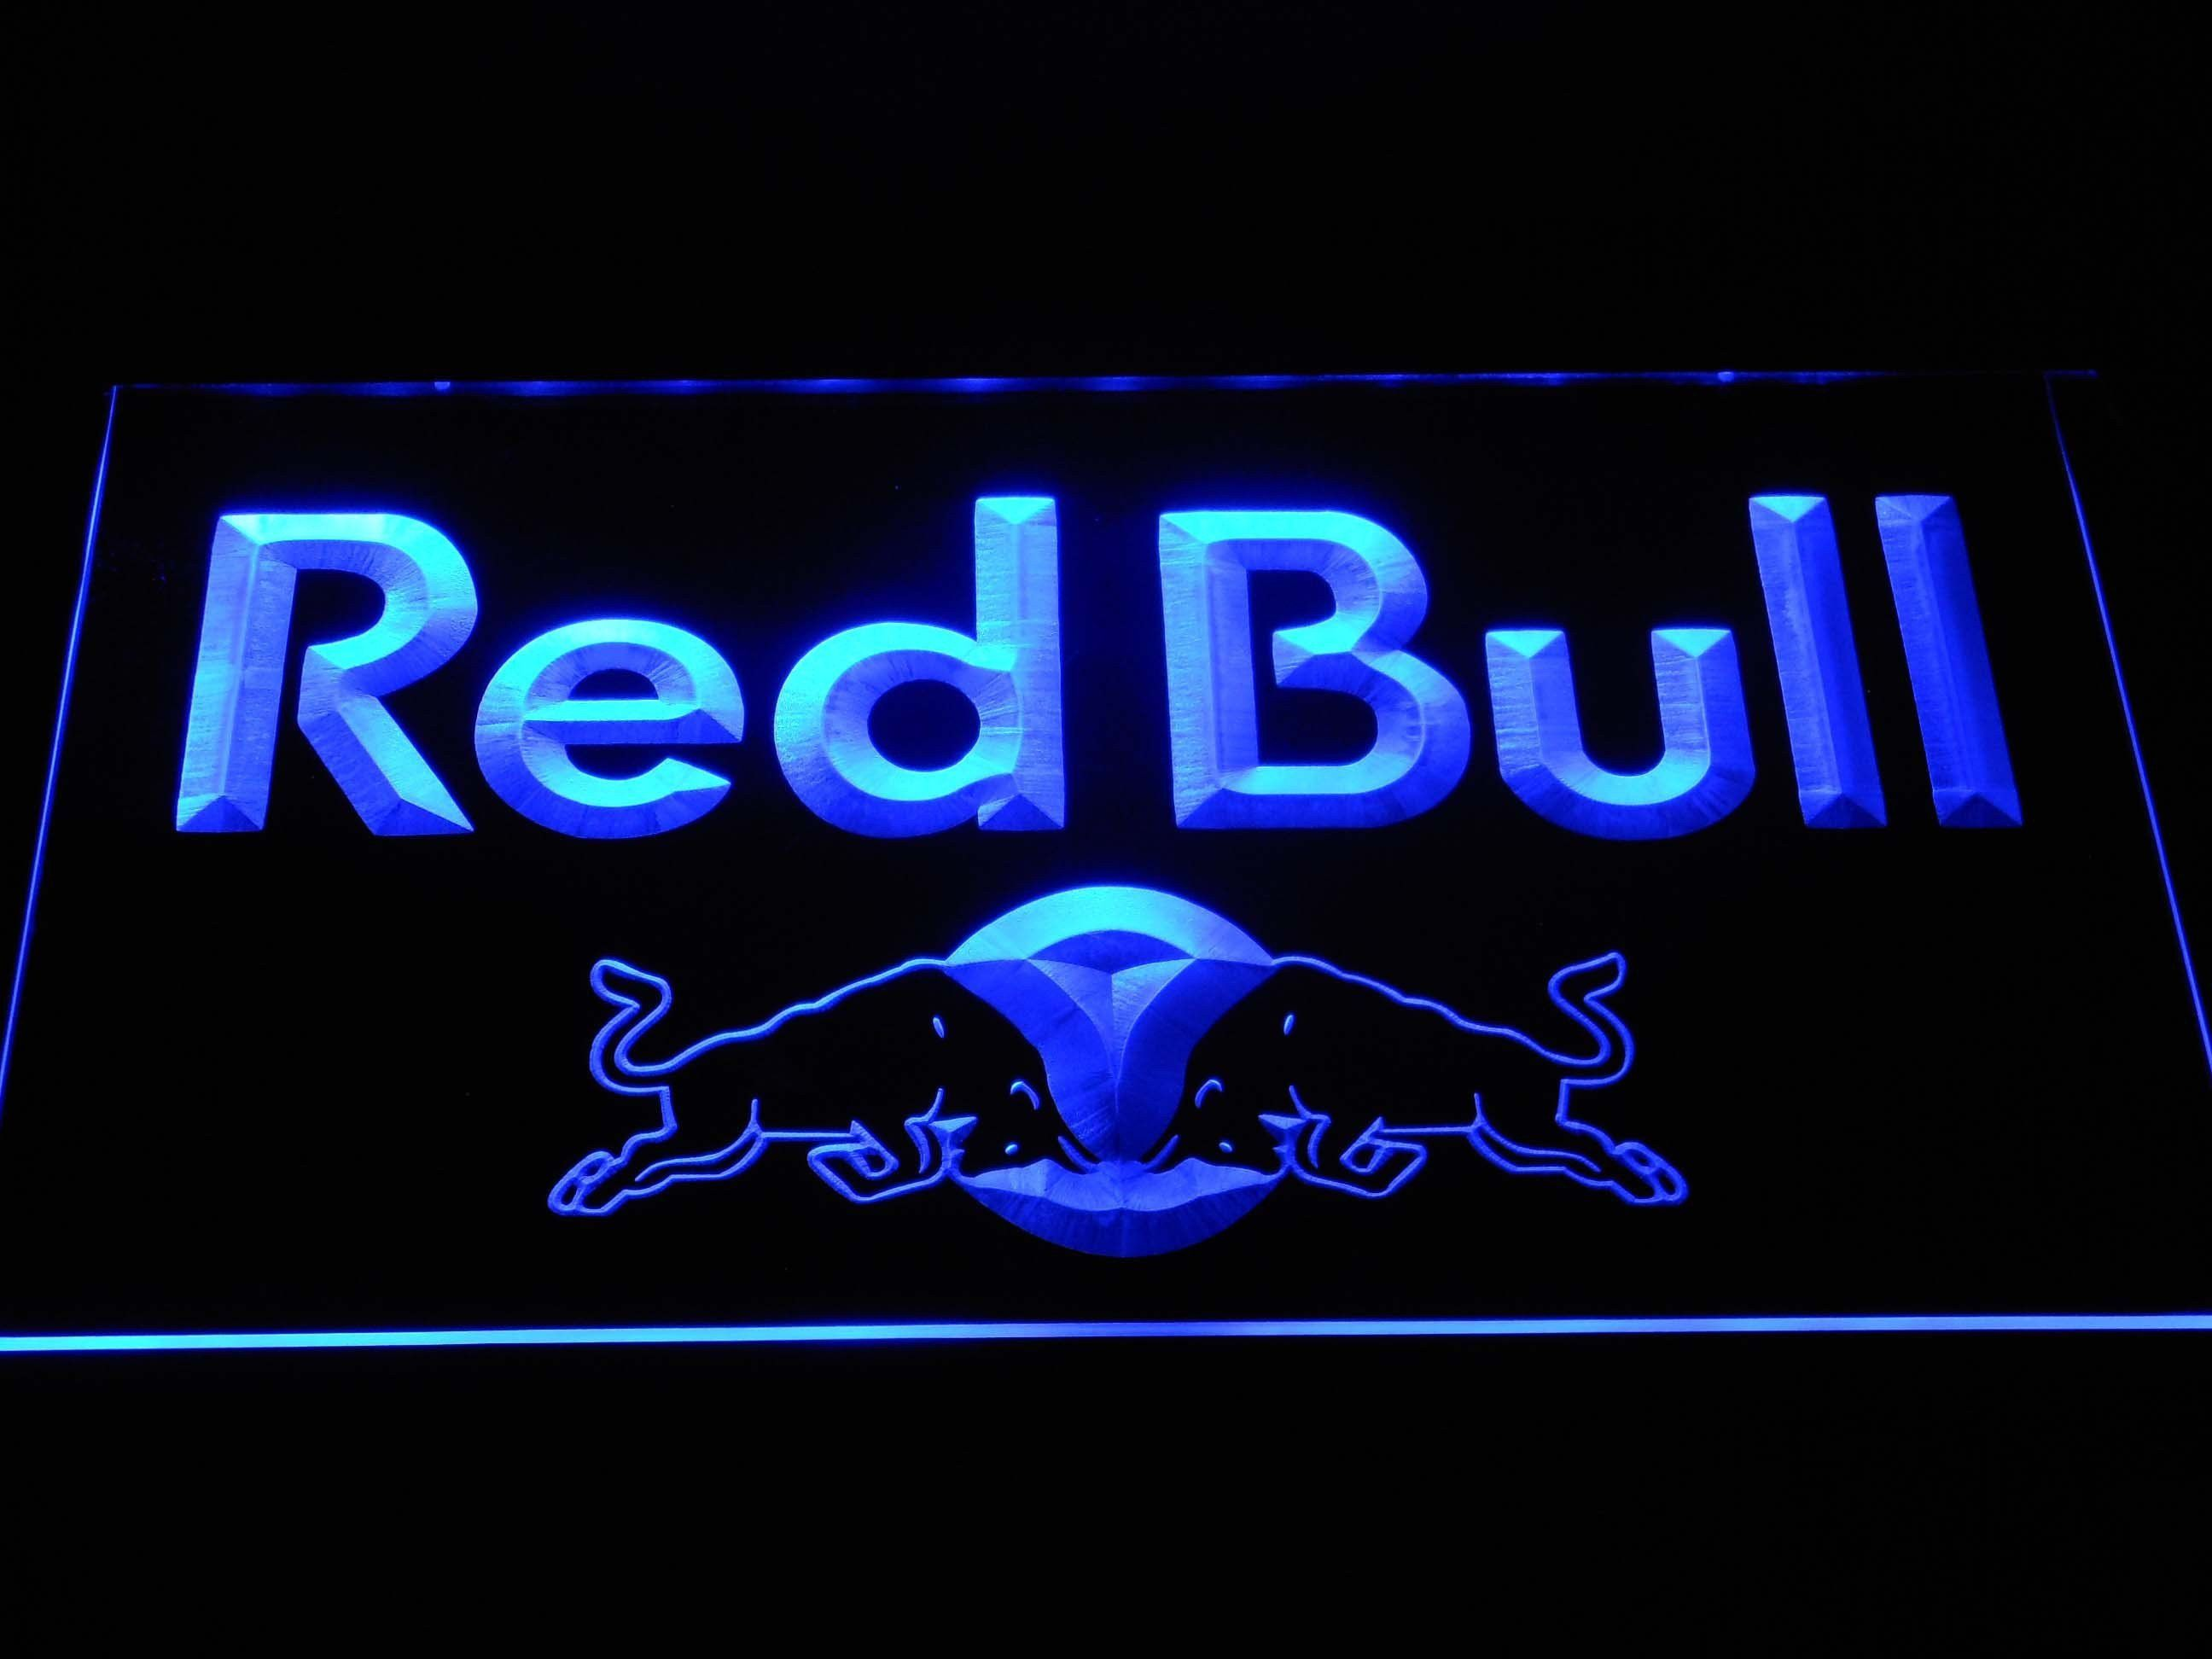 Red Bull Wordmark LED Neon Sign Led neon signs, Neon